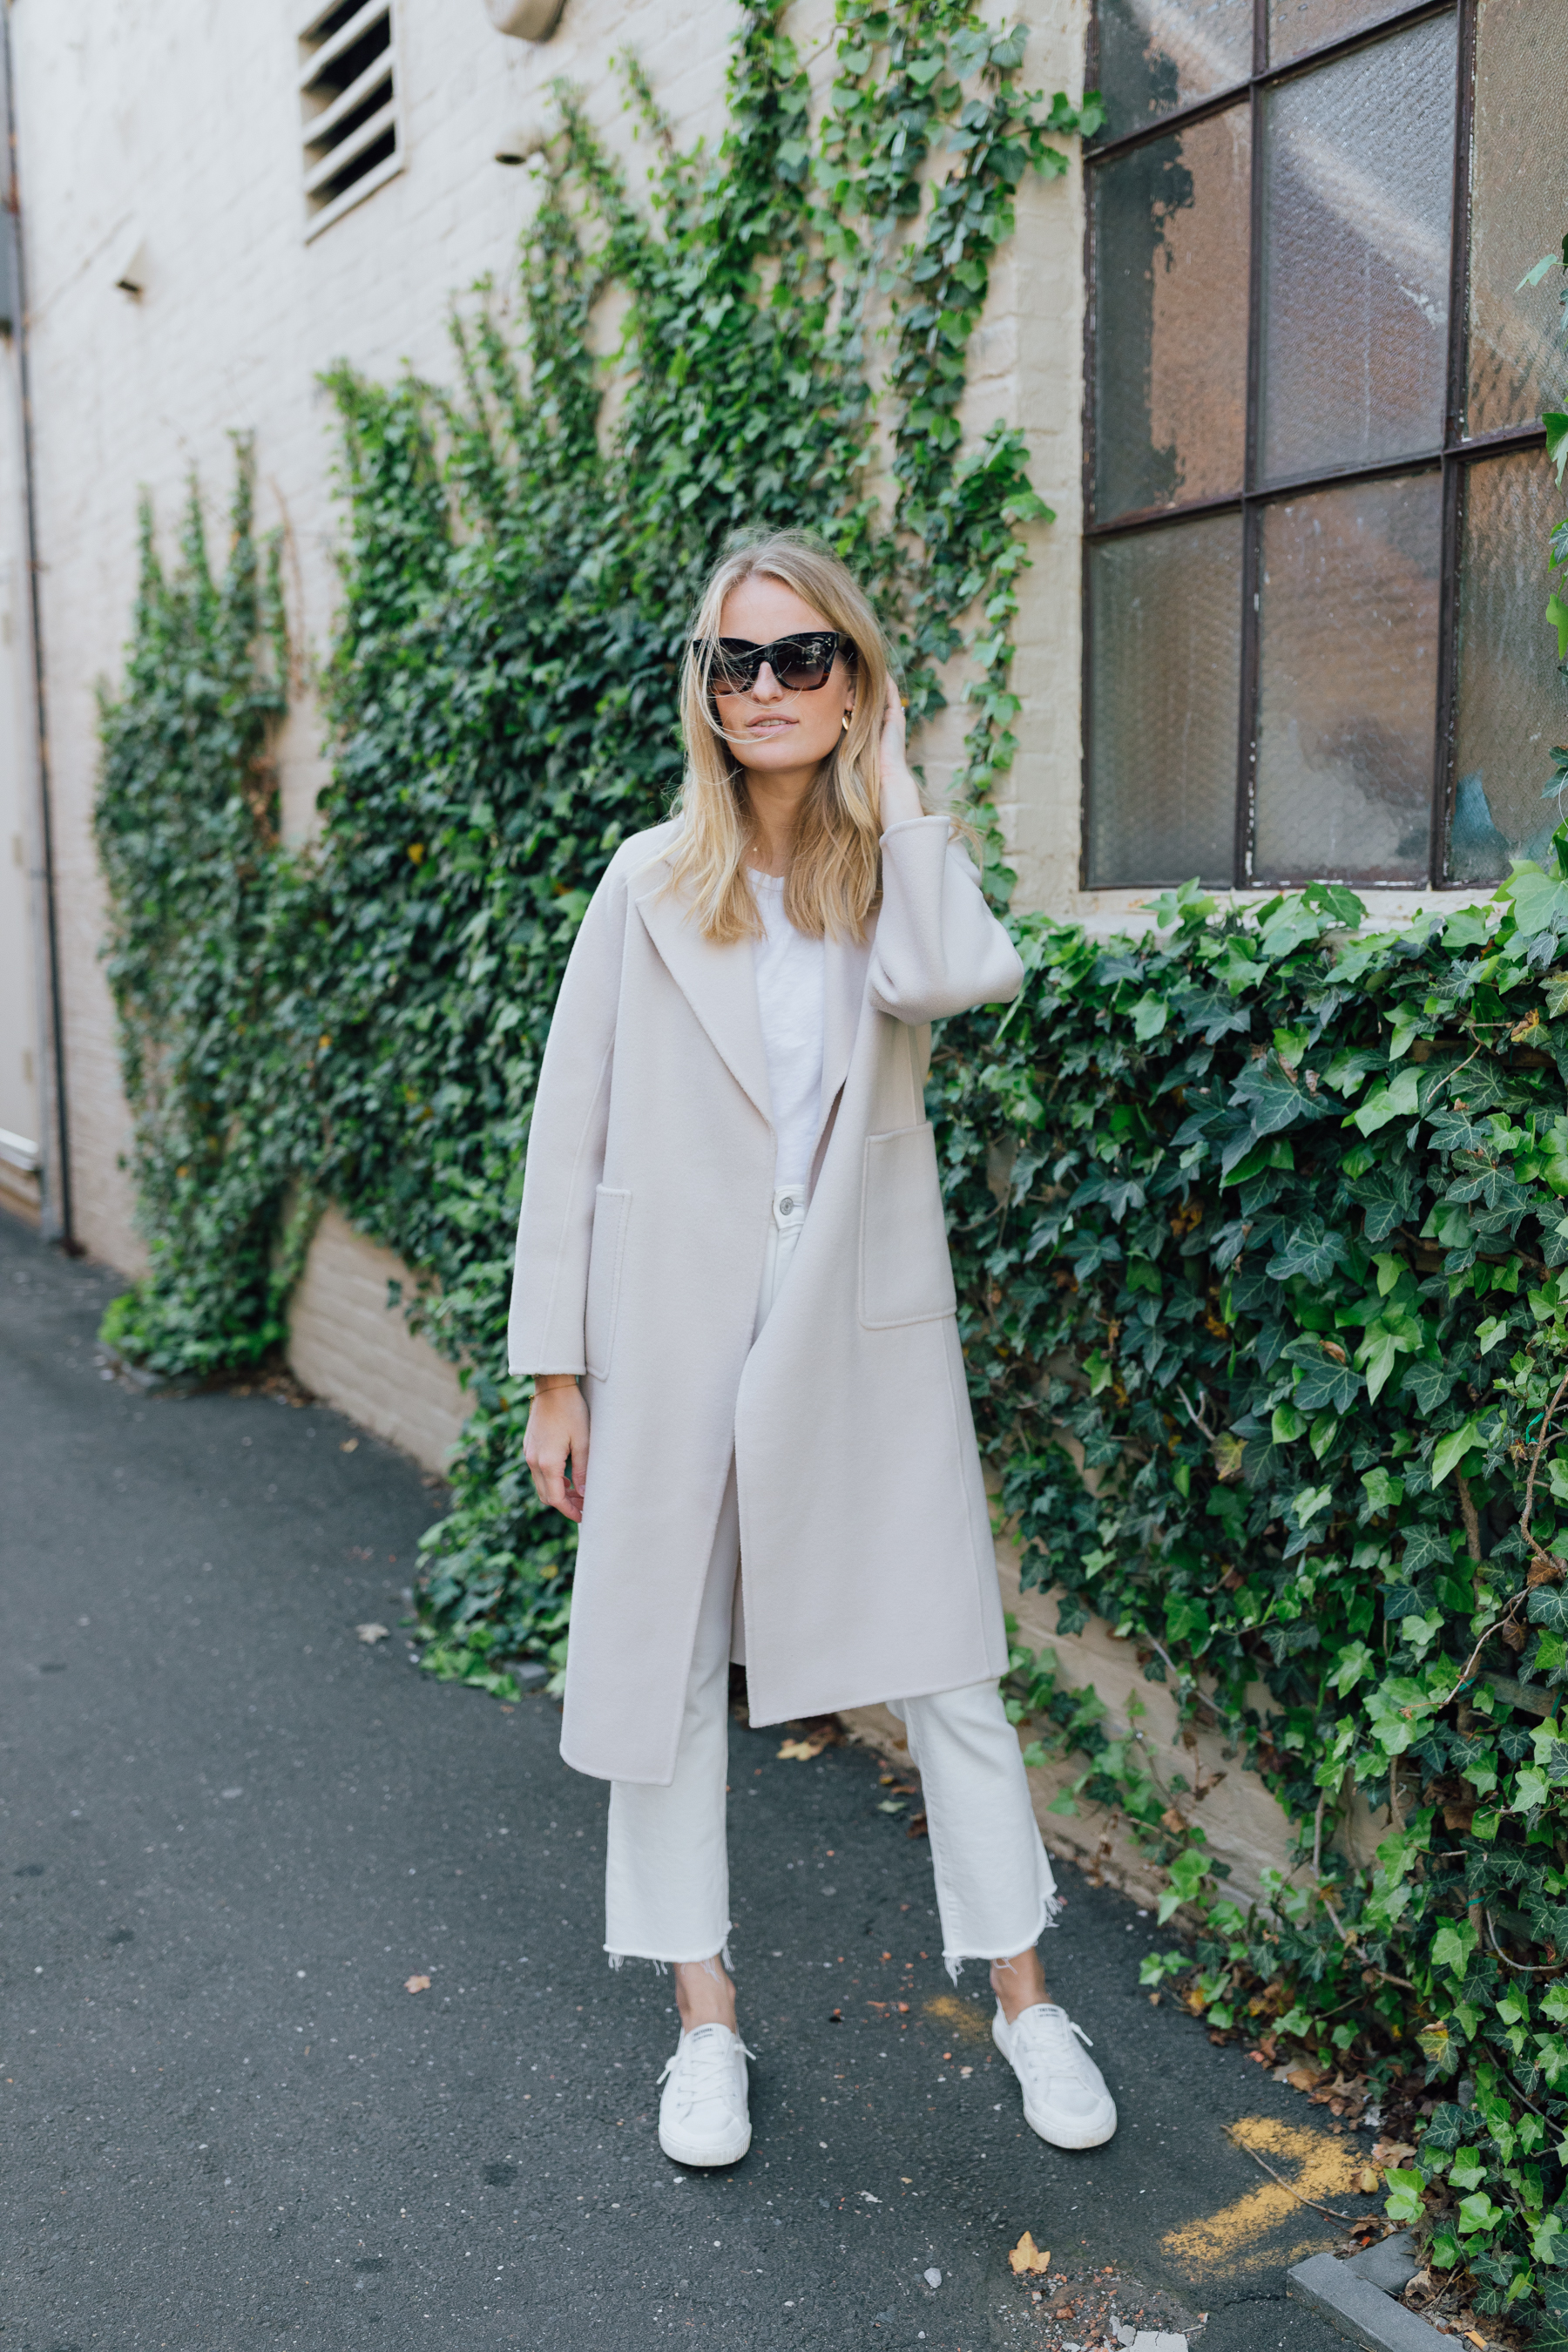 Neutral outfit for Spring and Fall // Oversized coat from The Curated styled with sneakers // The Girl Guide // Stephanie Trotta